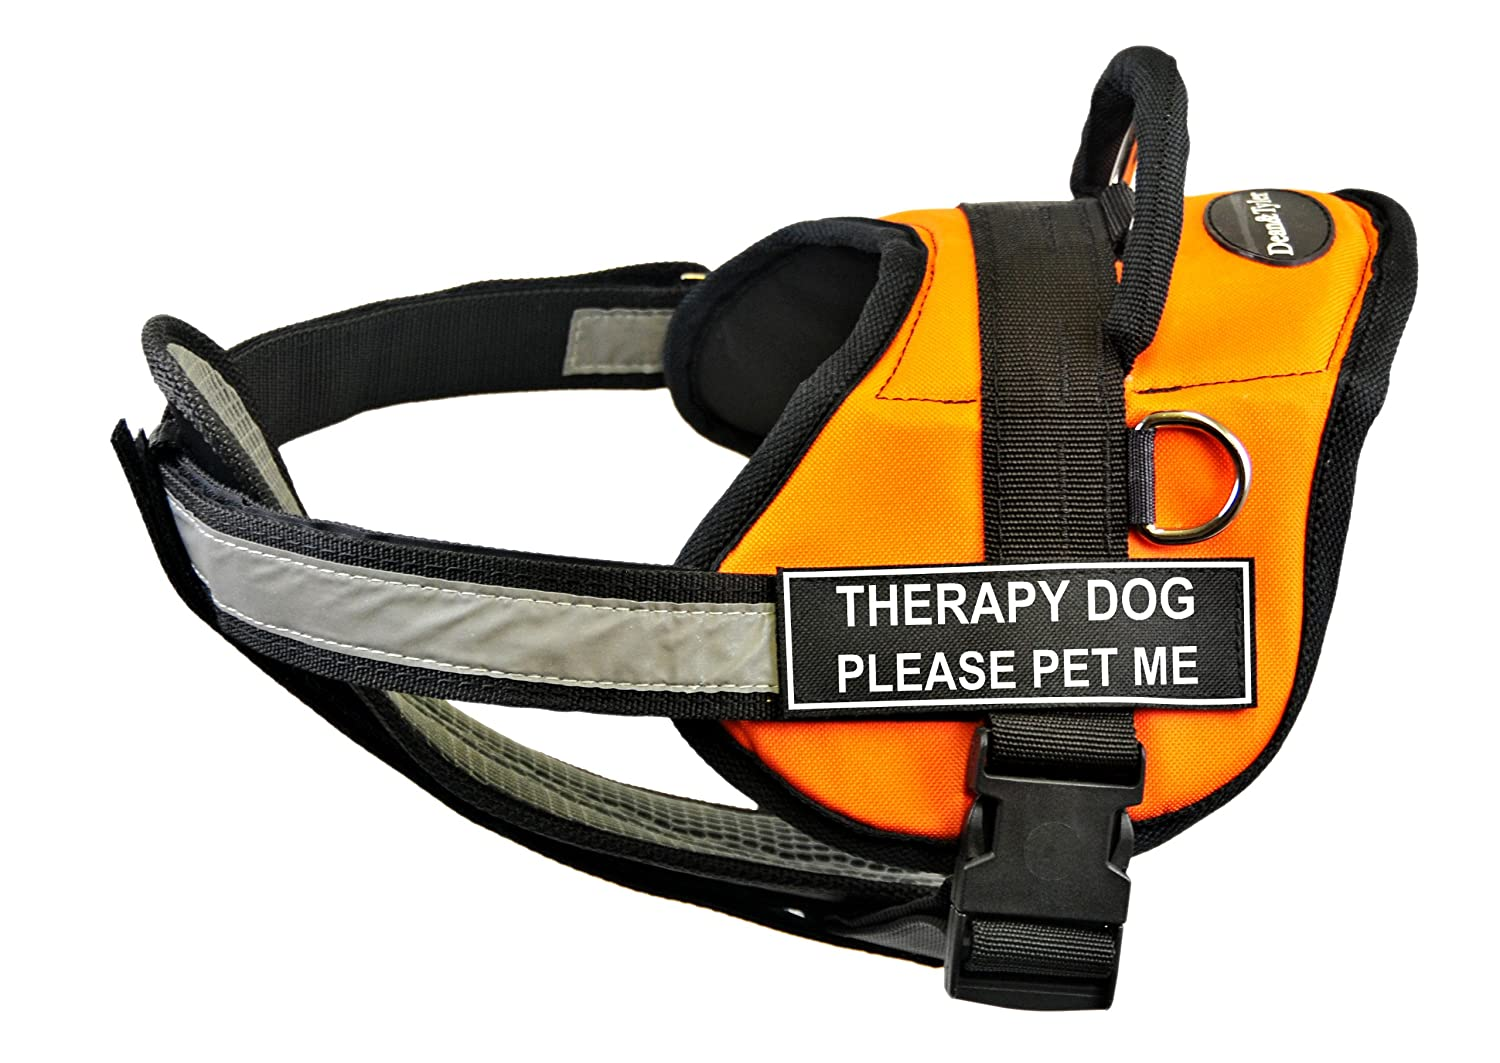 Dean & Tyler 25-Inch to 34-Inch Therapy Dog Please Pet Me Harness with Padded Reflective Chest Straps, Small, orange Black